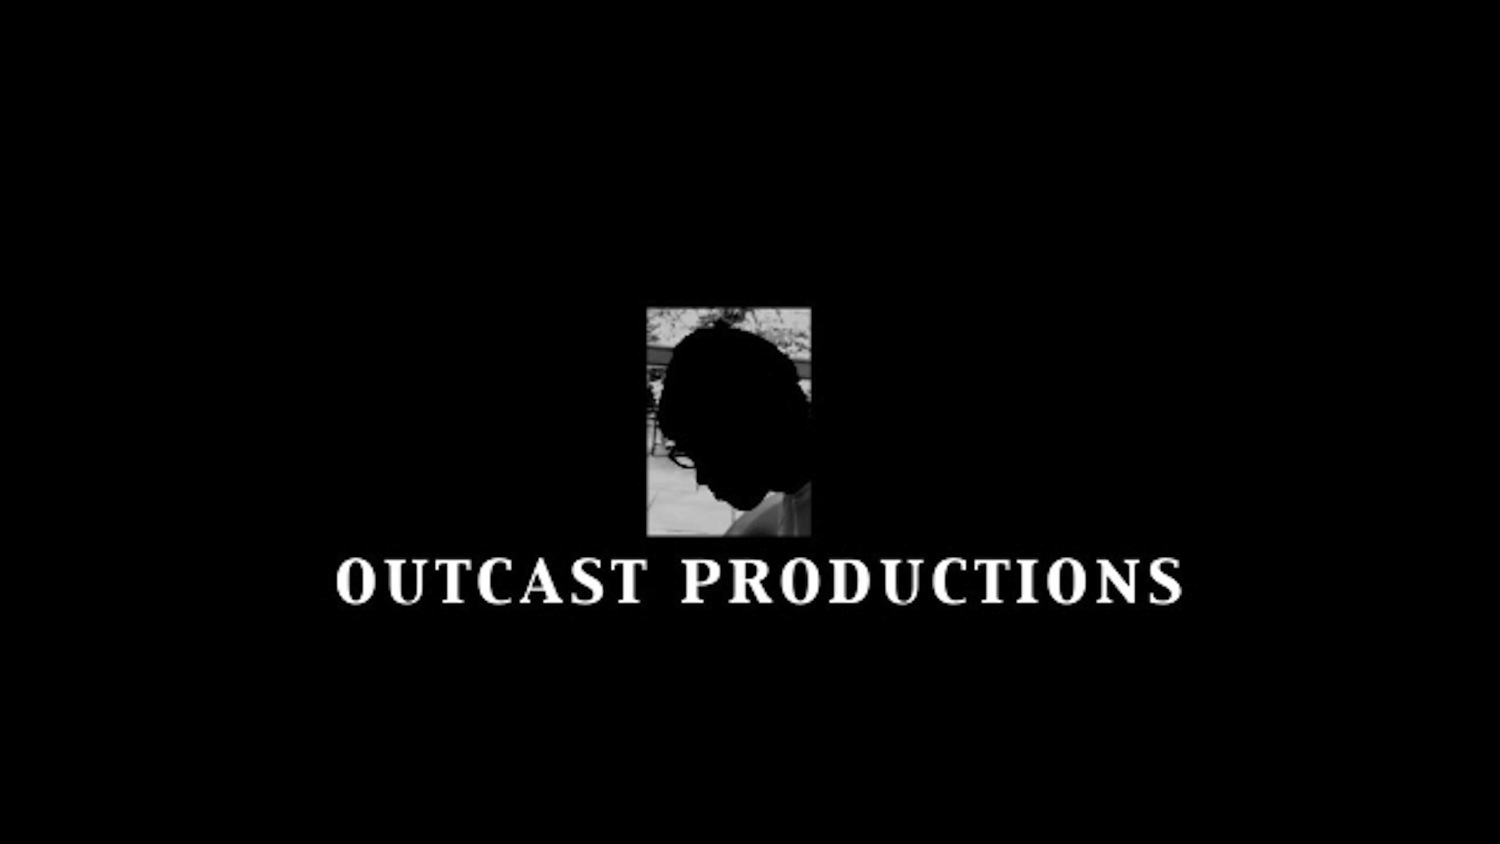 OUTCAST PRODUCTIONS